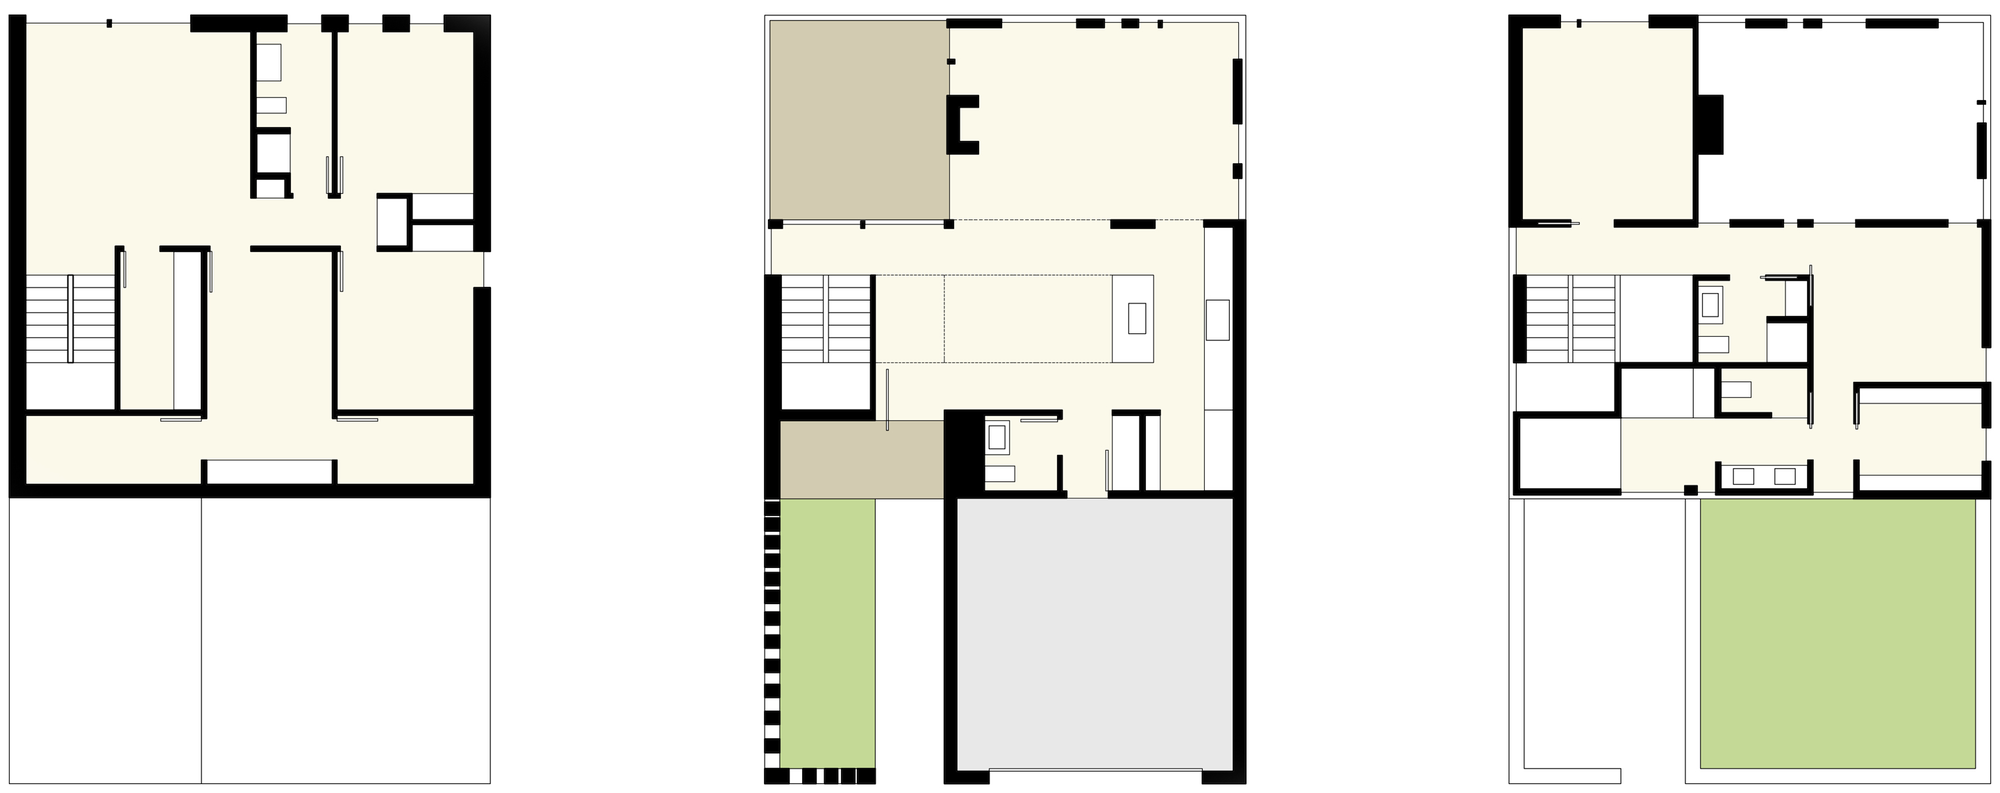 redaction-house-11